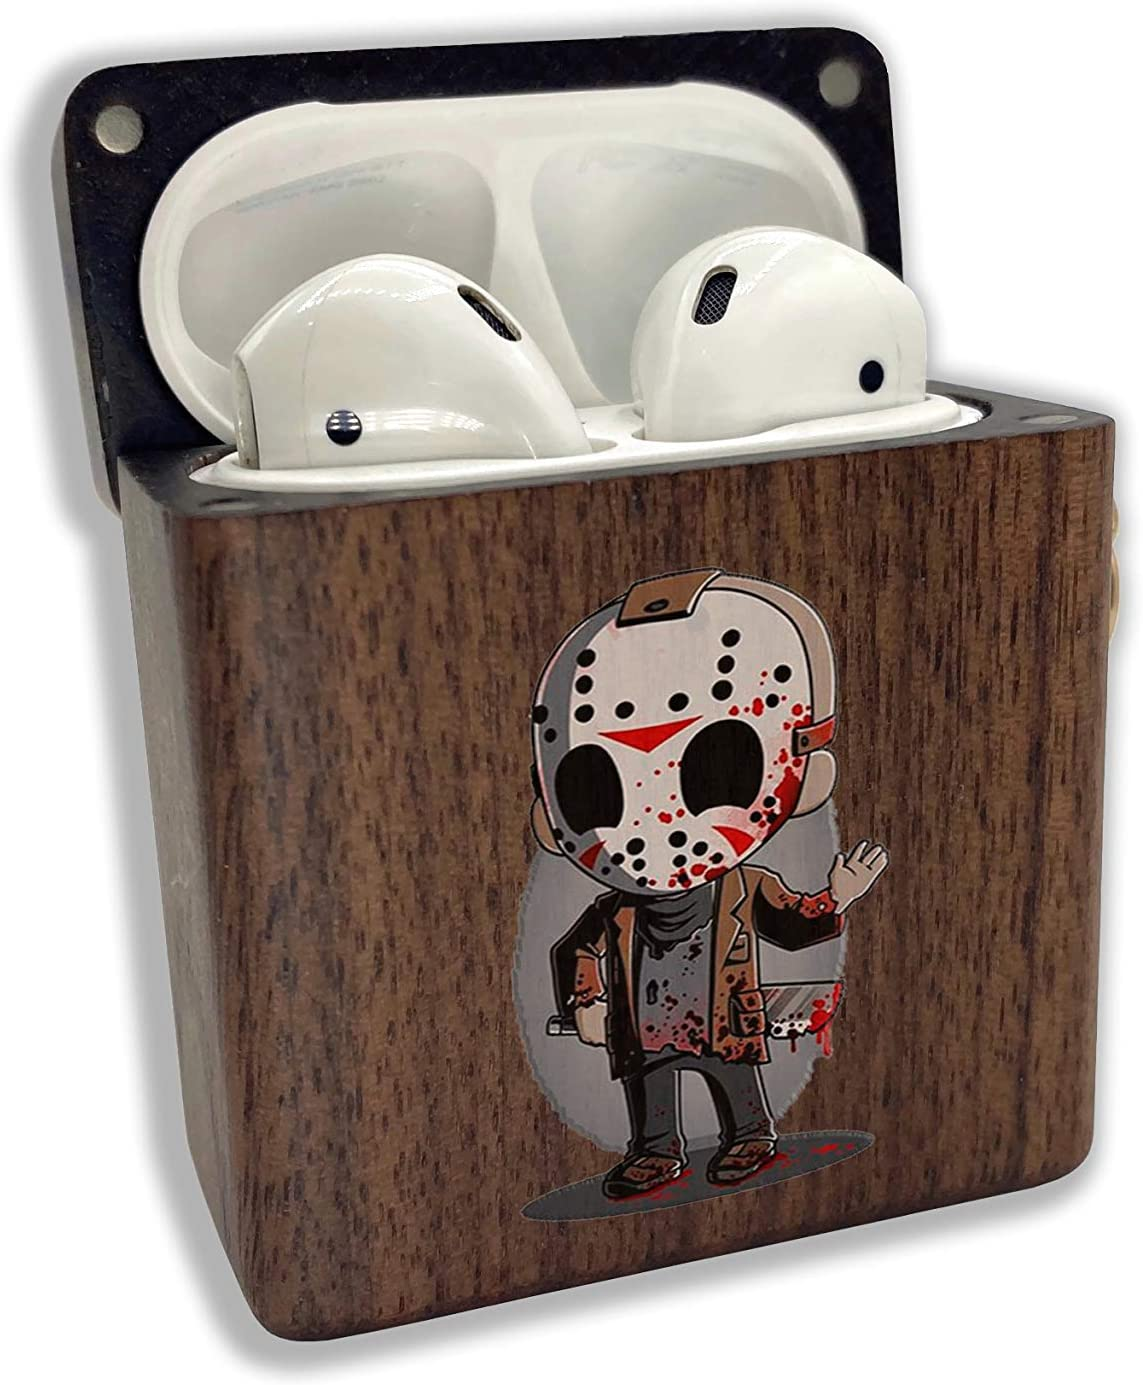 Halloween Jason Voorhees Wood case Compatible with Apple AirPods 1 2 Pro AirPod Real Natural Wooden Grain Cover with Keychain Cartoon SN 32 (AirPods 1/2, Walnut)